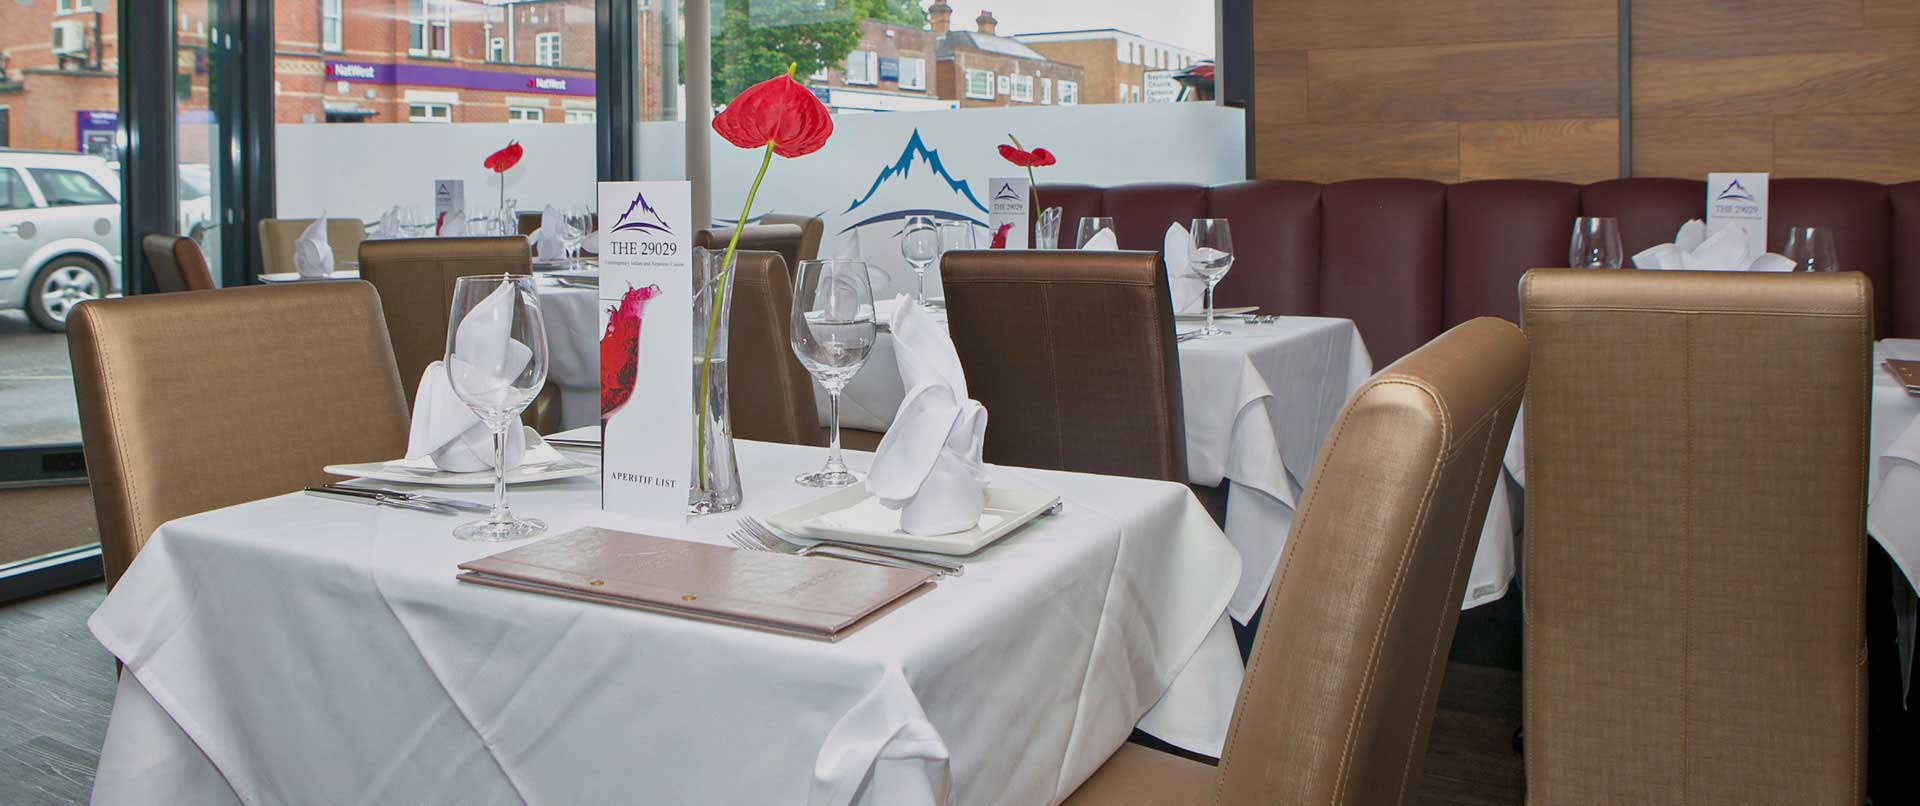 Indian and Nepalese Cuisine Restaurants - The 29029 Restaurant